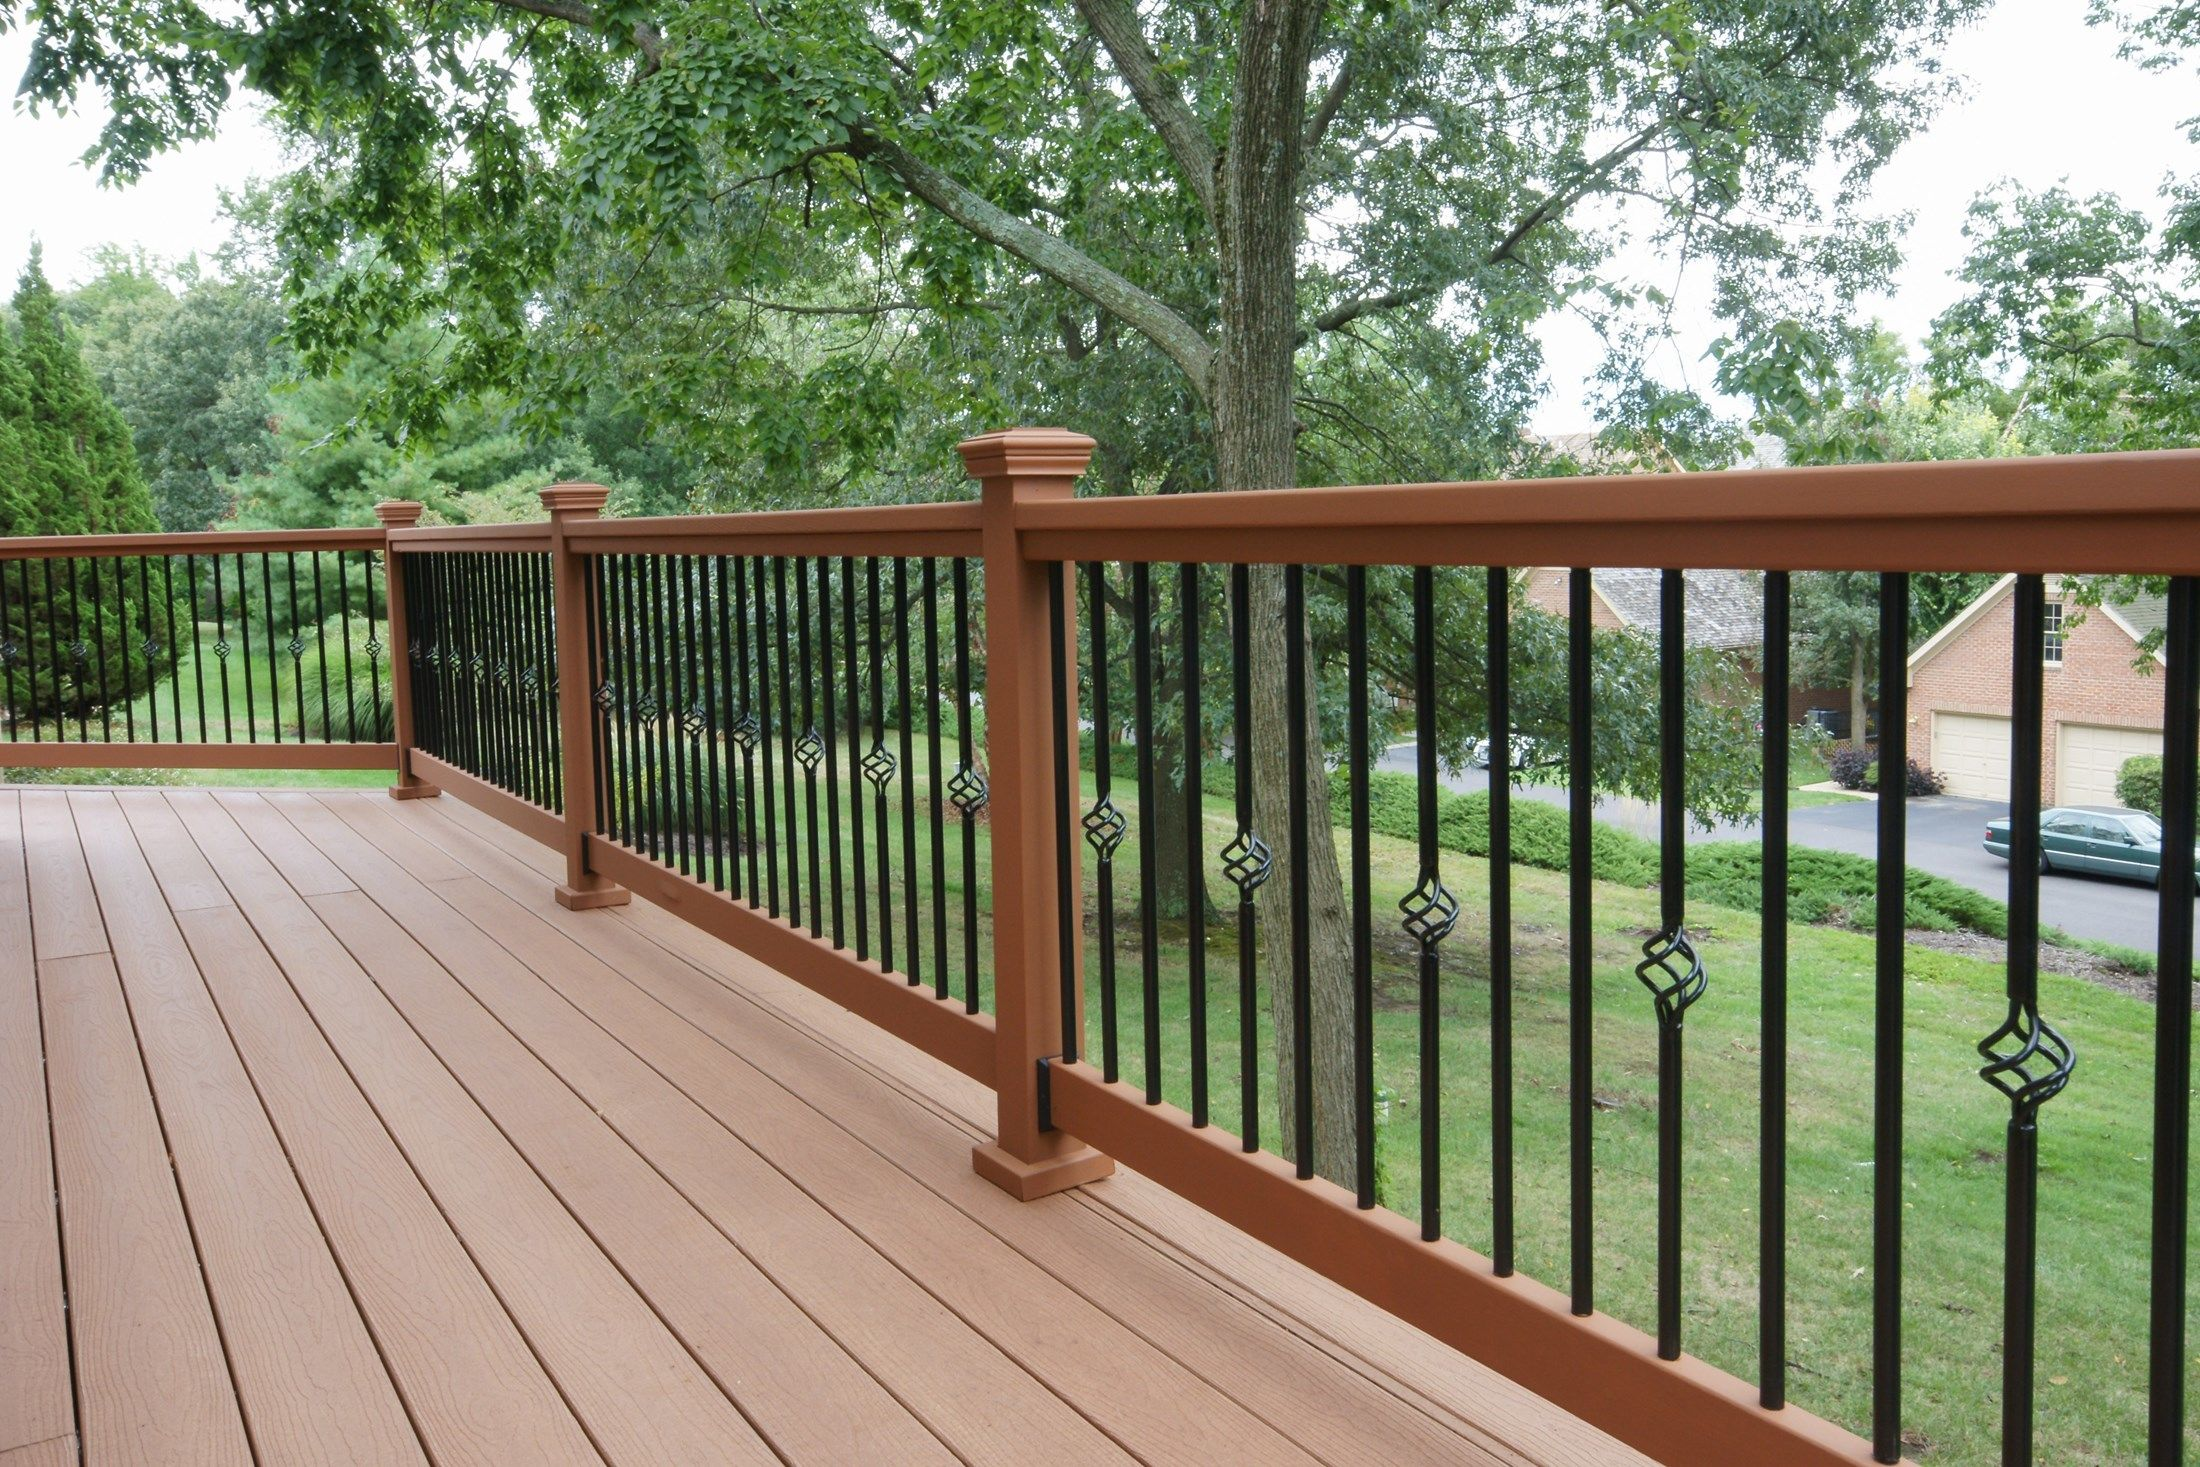 South River Cedar deck - Picture 1505